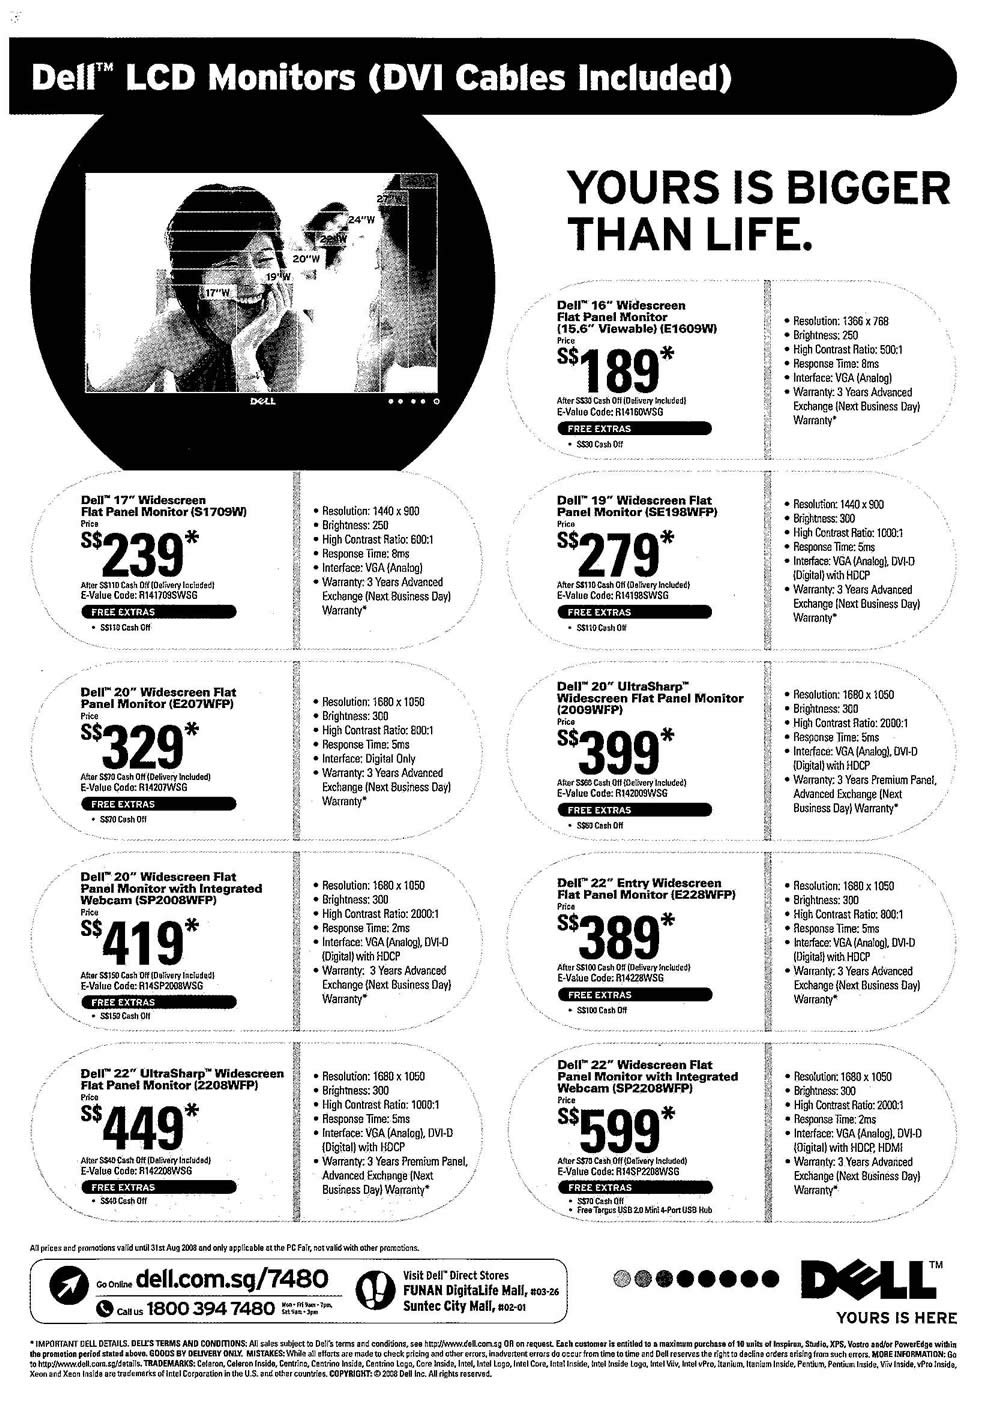 Comex 2008 price list image brochure of Dell LCD Monitor Page 1